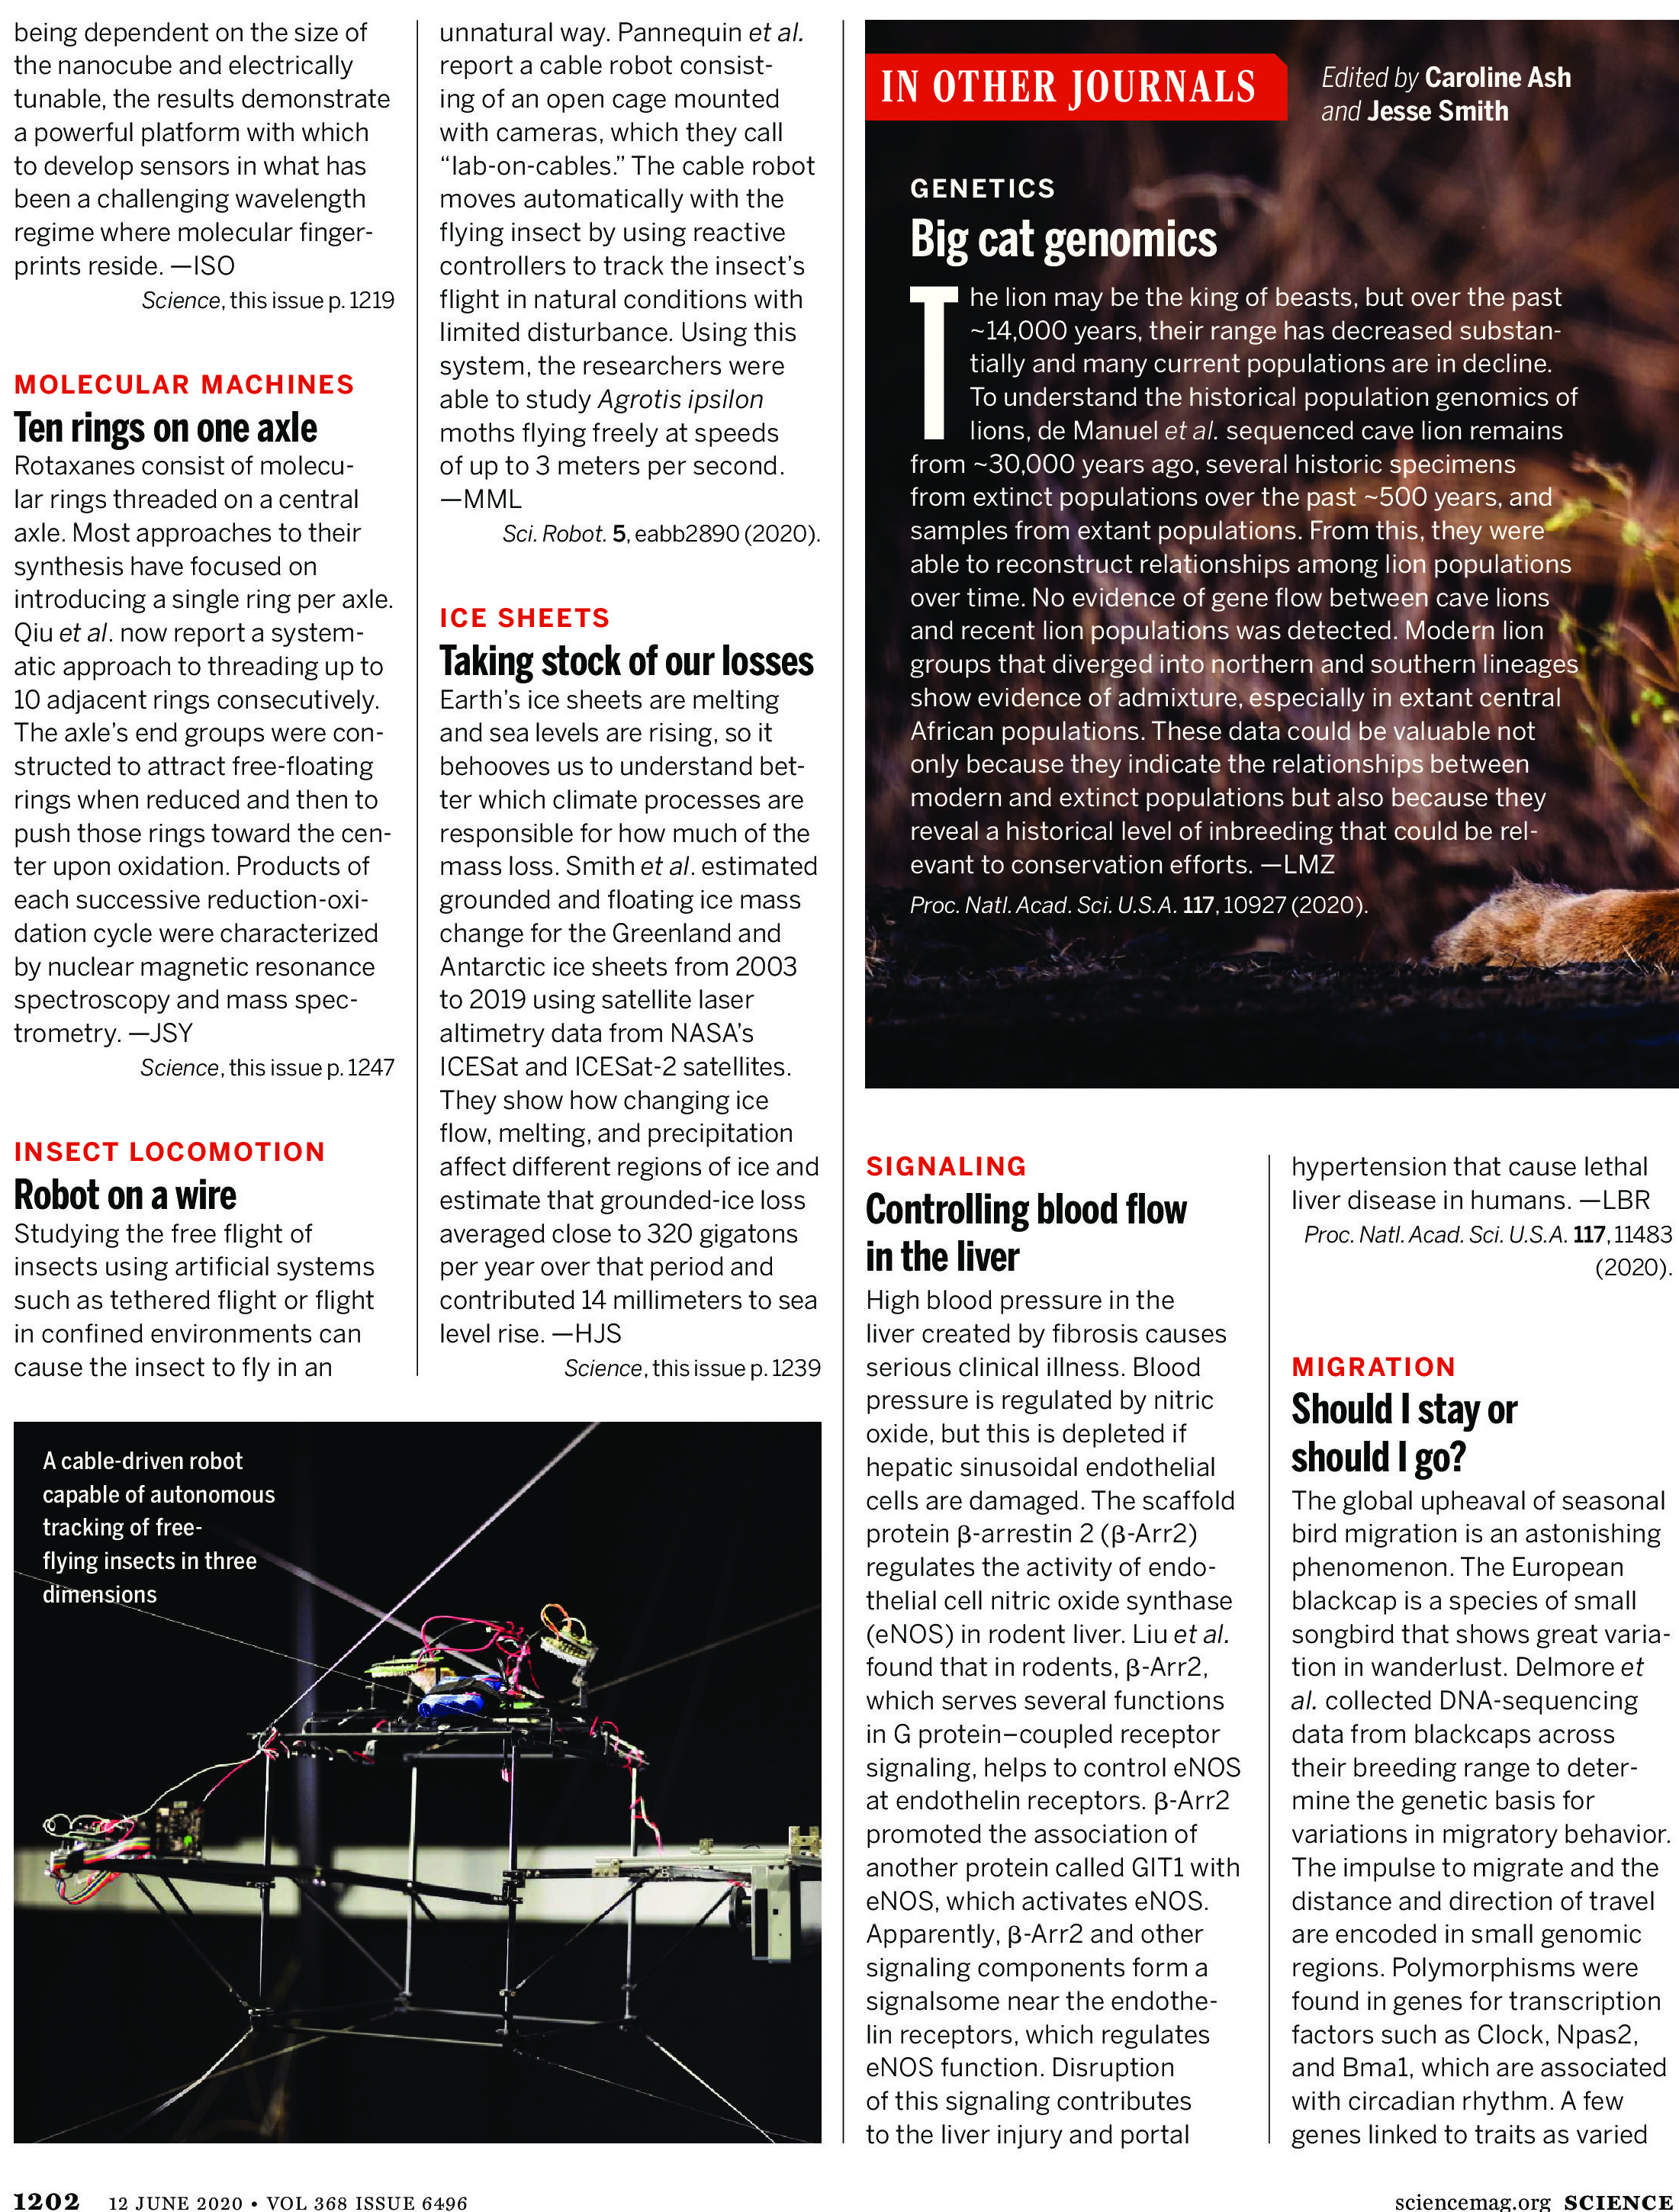 Science Magazine Research Highlights - June 12 2020